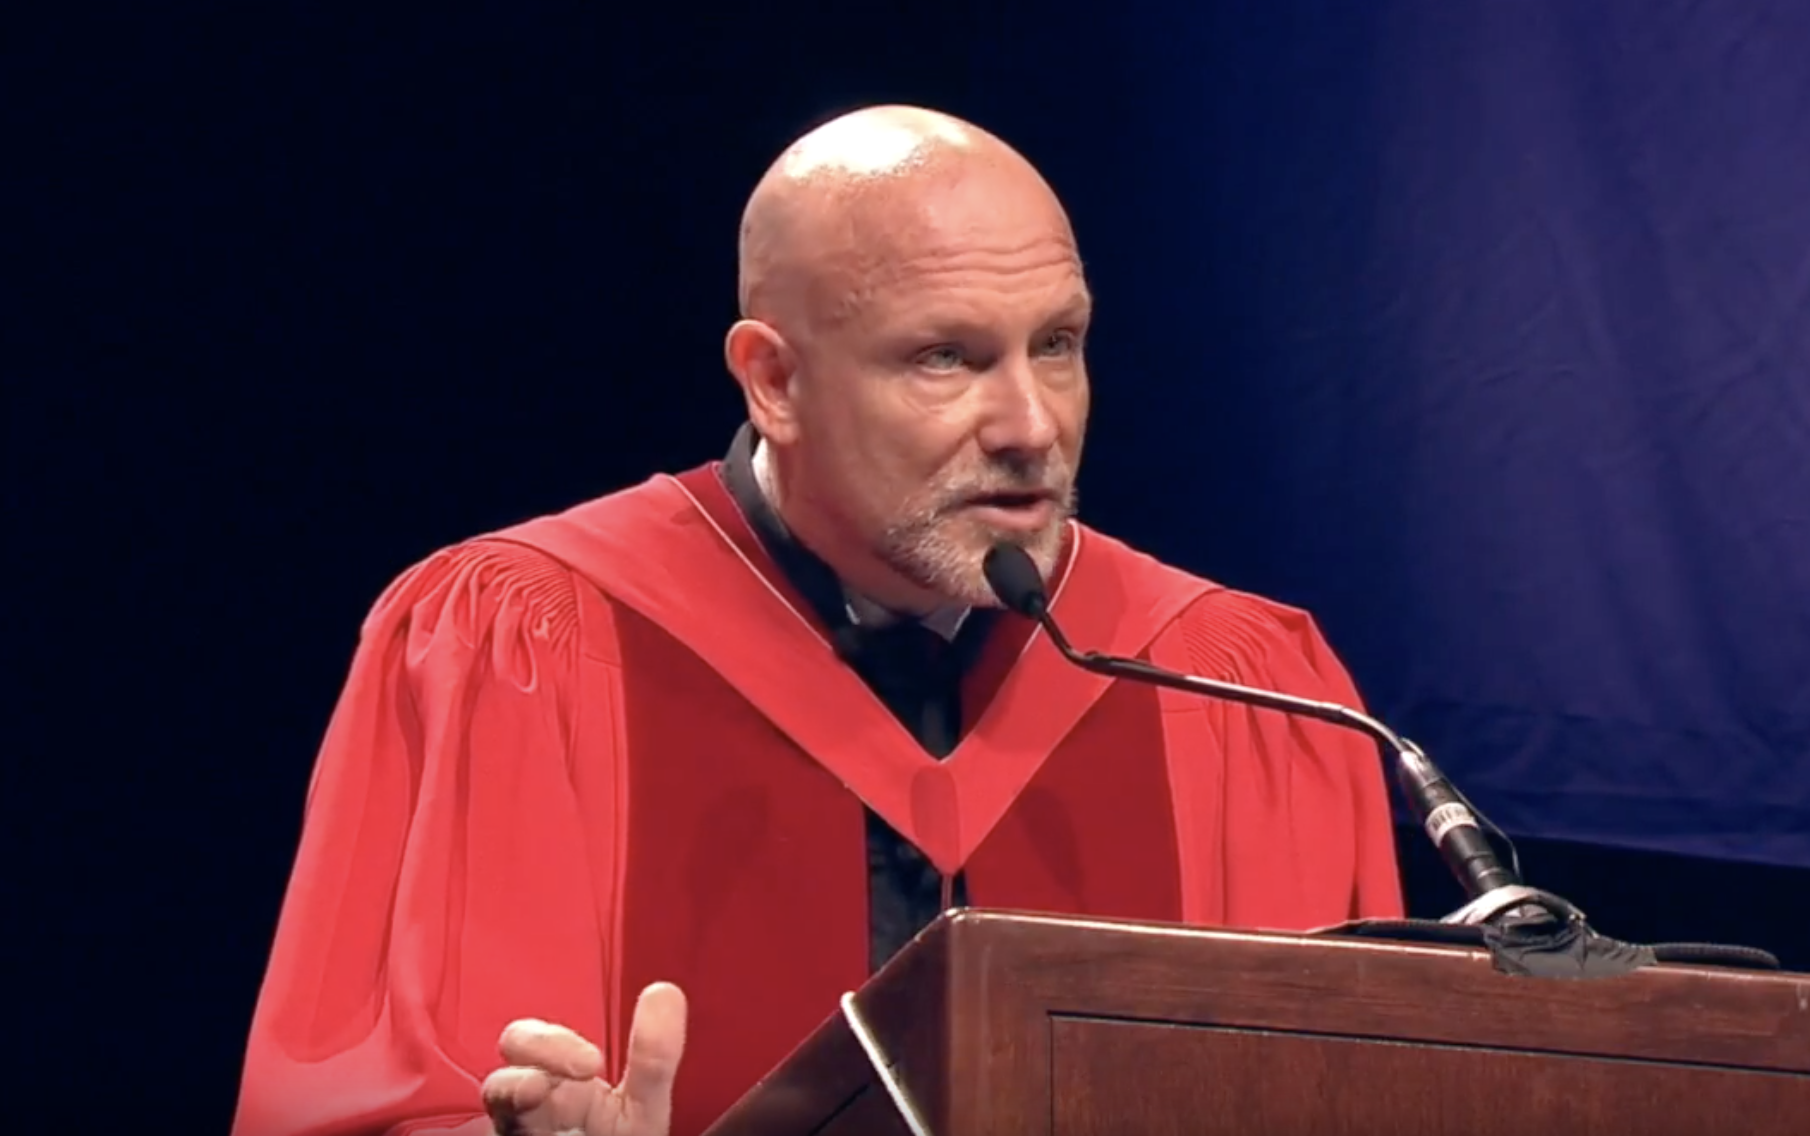 Bob Perrins delivering a commencement speech